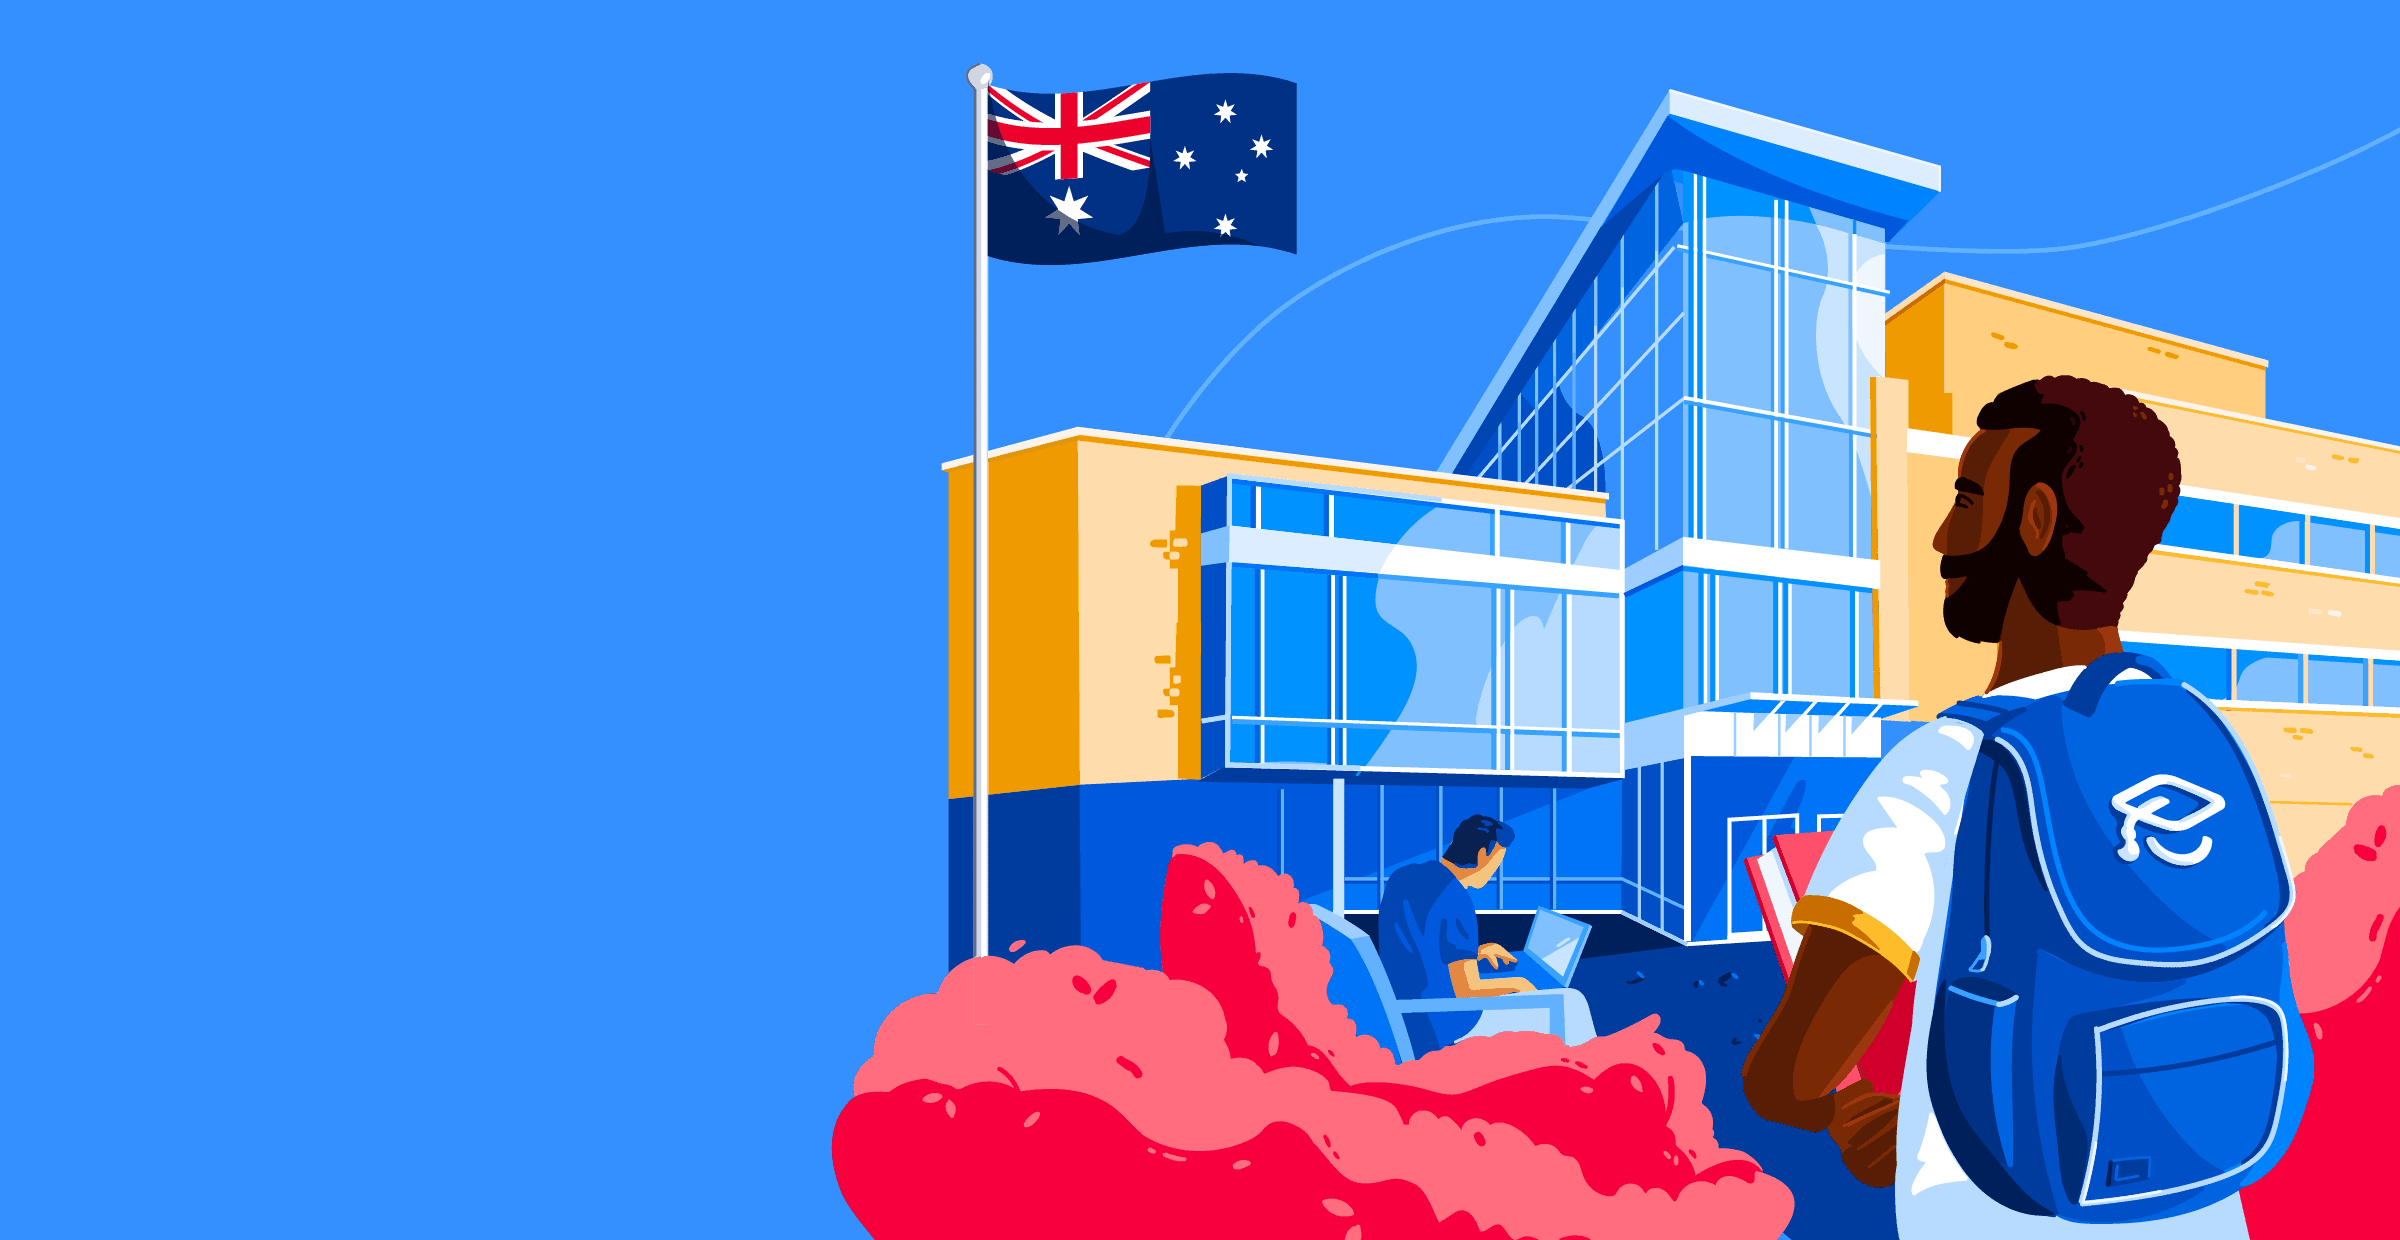 Illustration of student in front of Australian school